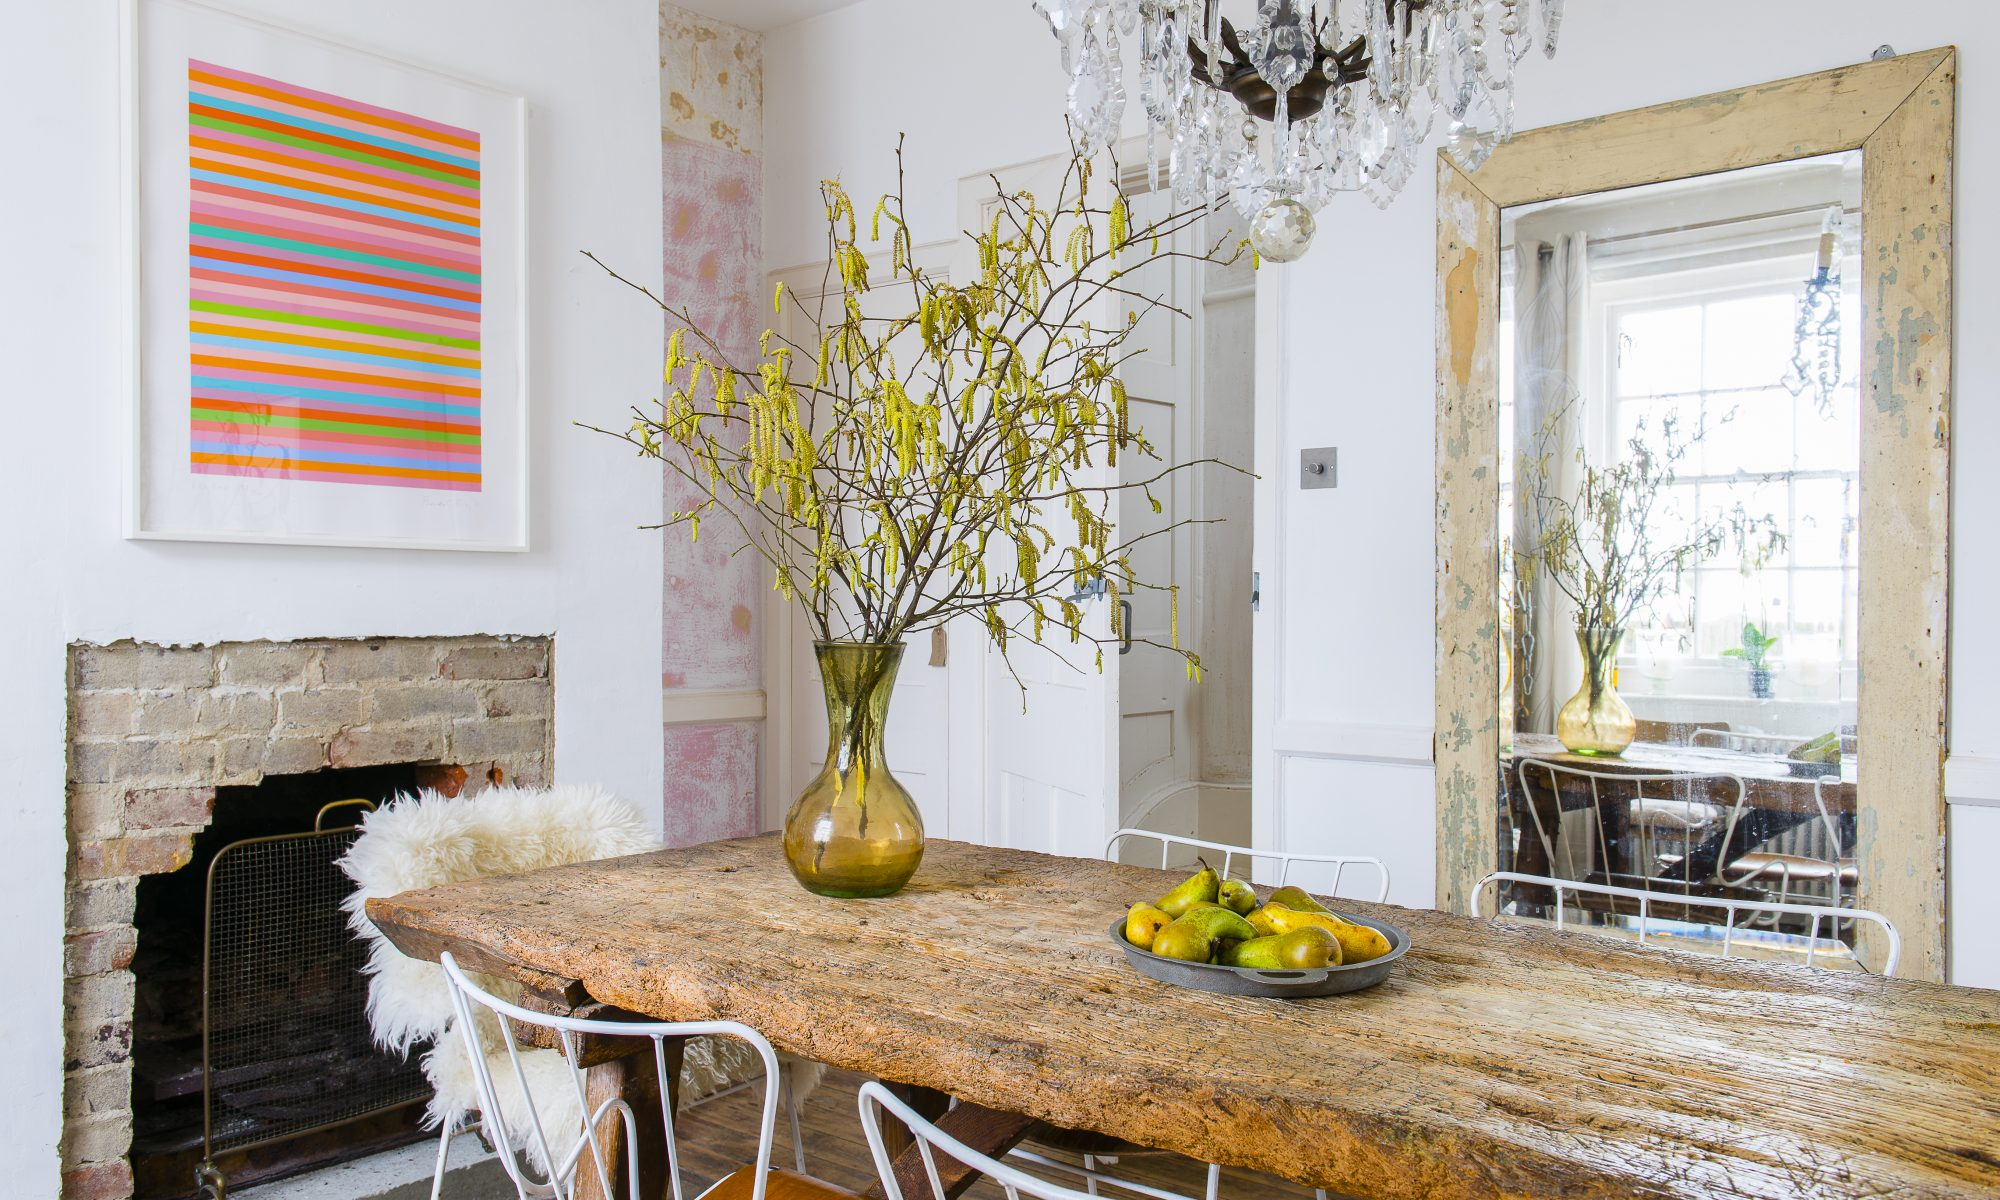 The dining table is medieval. It was given to Marta's father, an architect by a client in lieu of fees. Marta deliberately exposed the brickwork around the fireplace to reveal the building's fabric. The mirror is from McCully & Crane in Rye